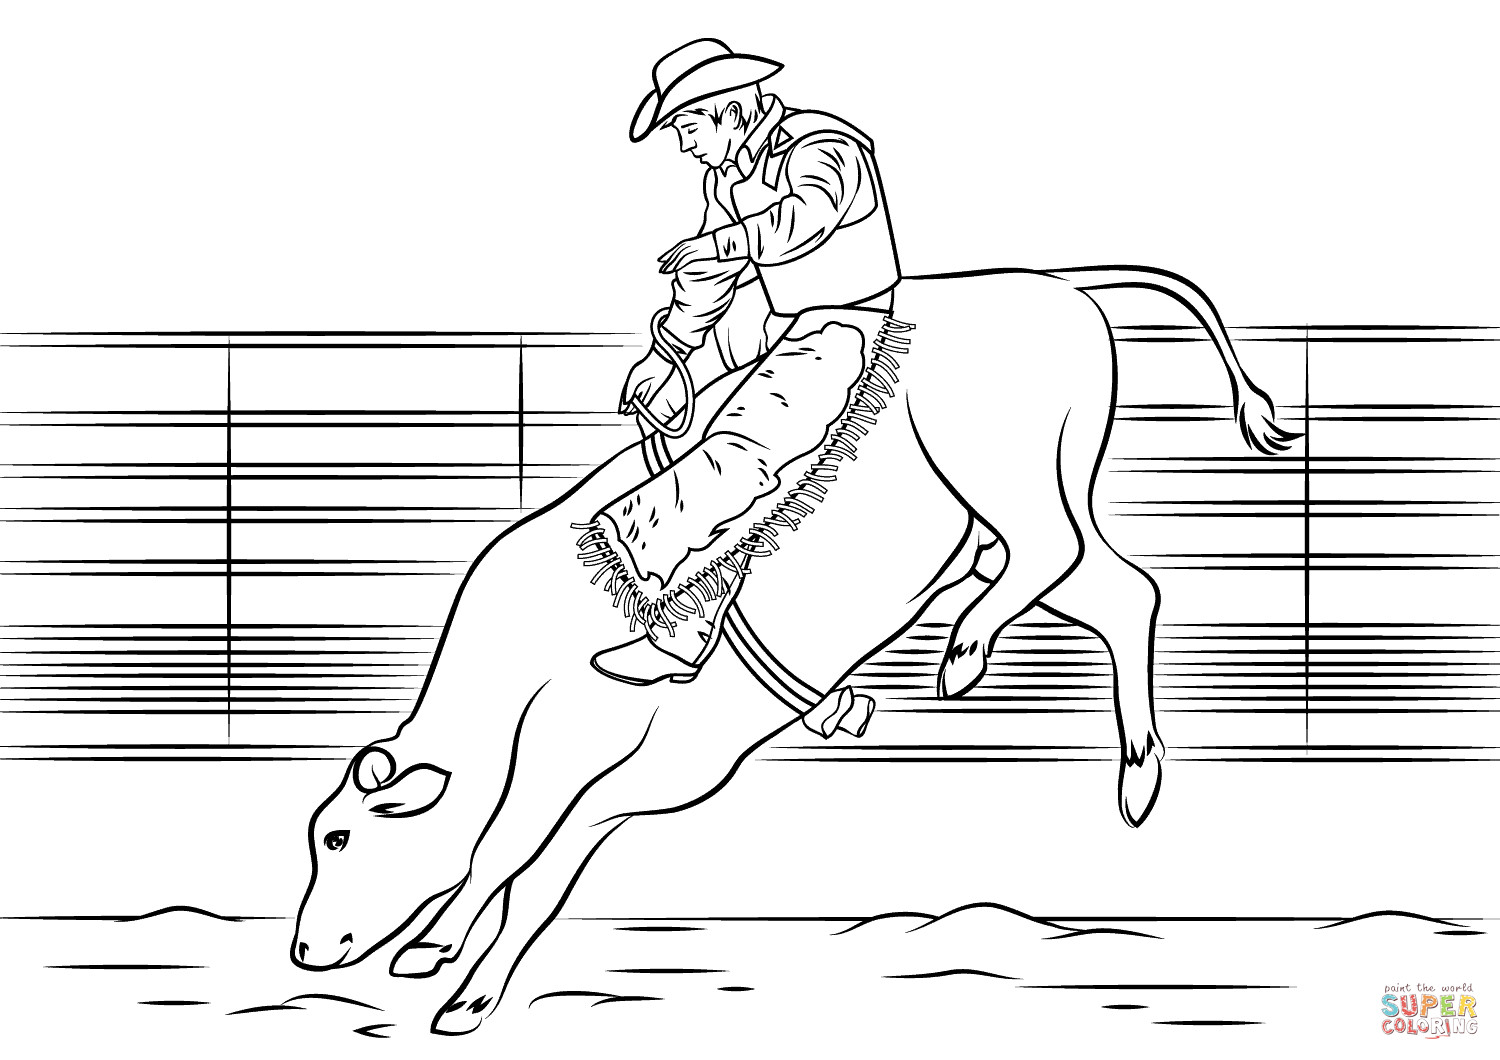 Bull Riding Coloring Pages  Bull Riding coloring page